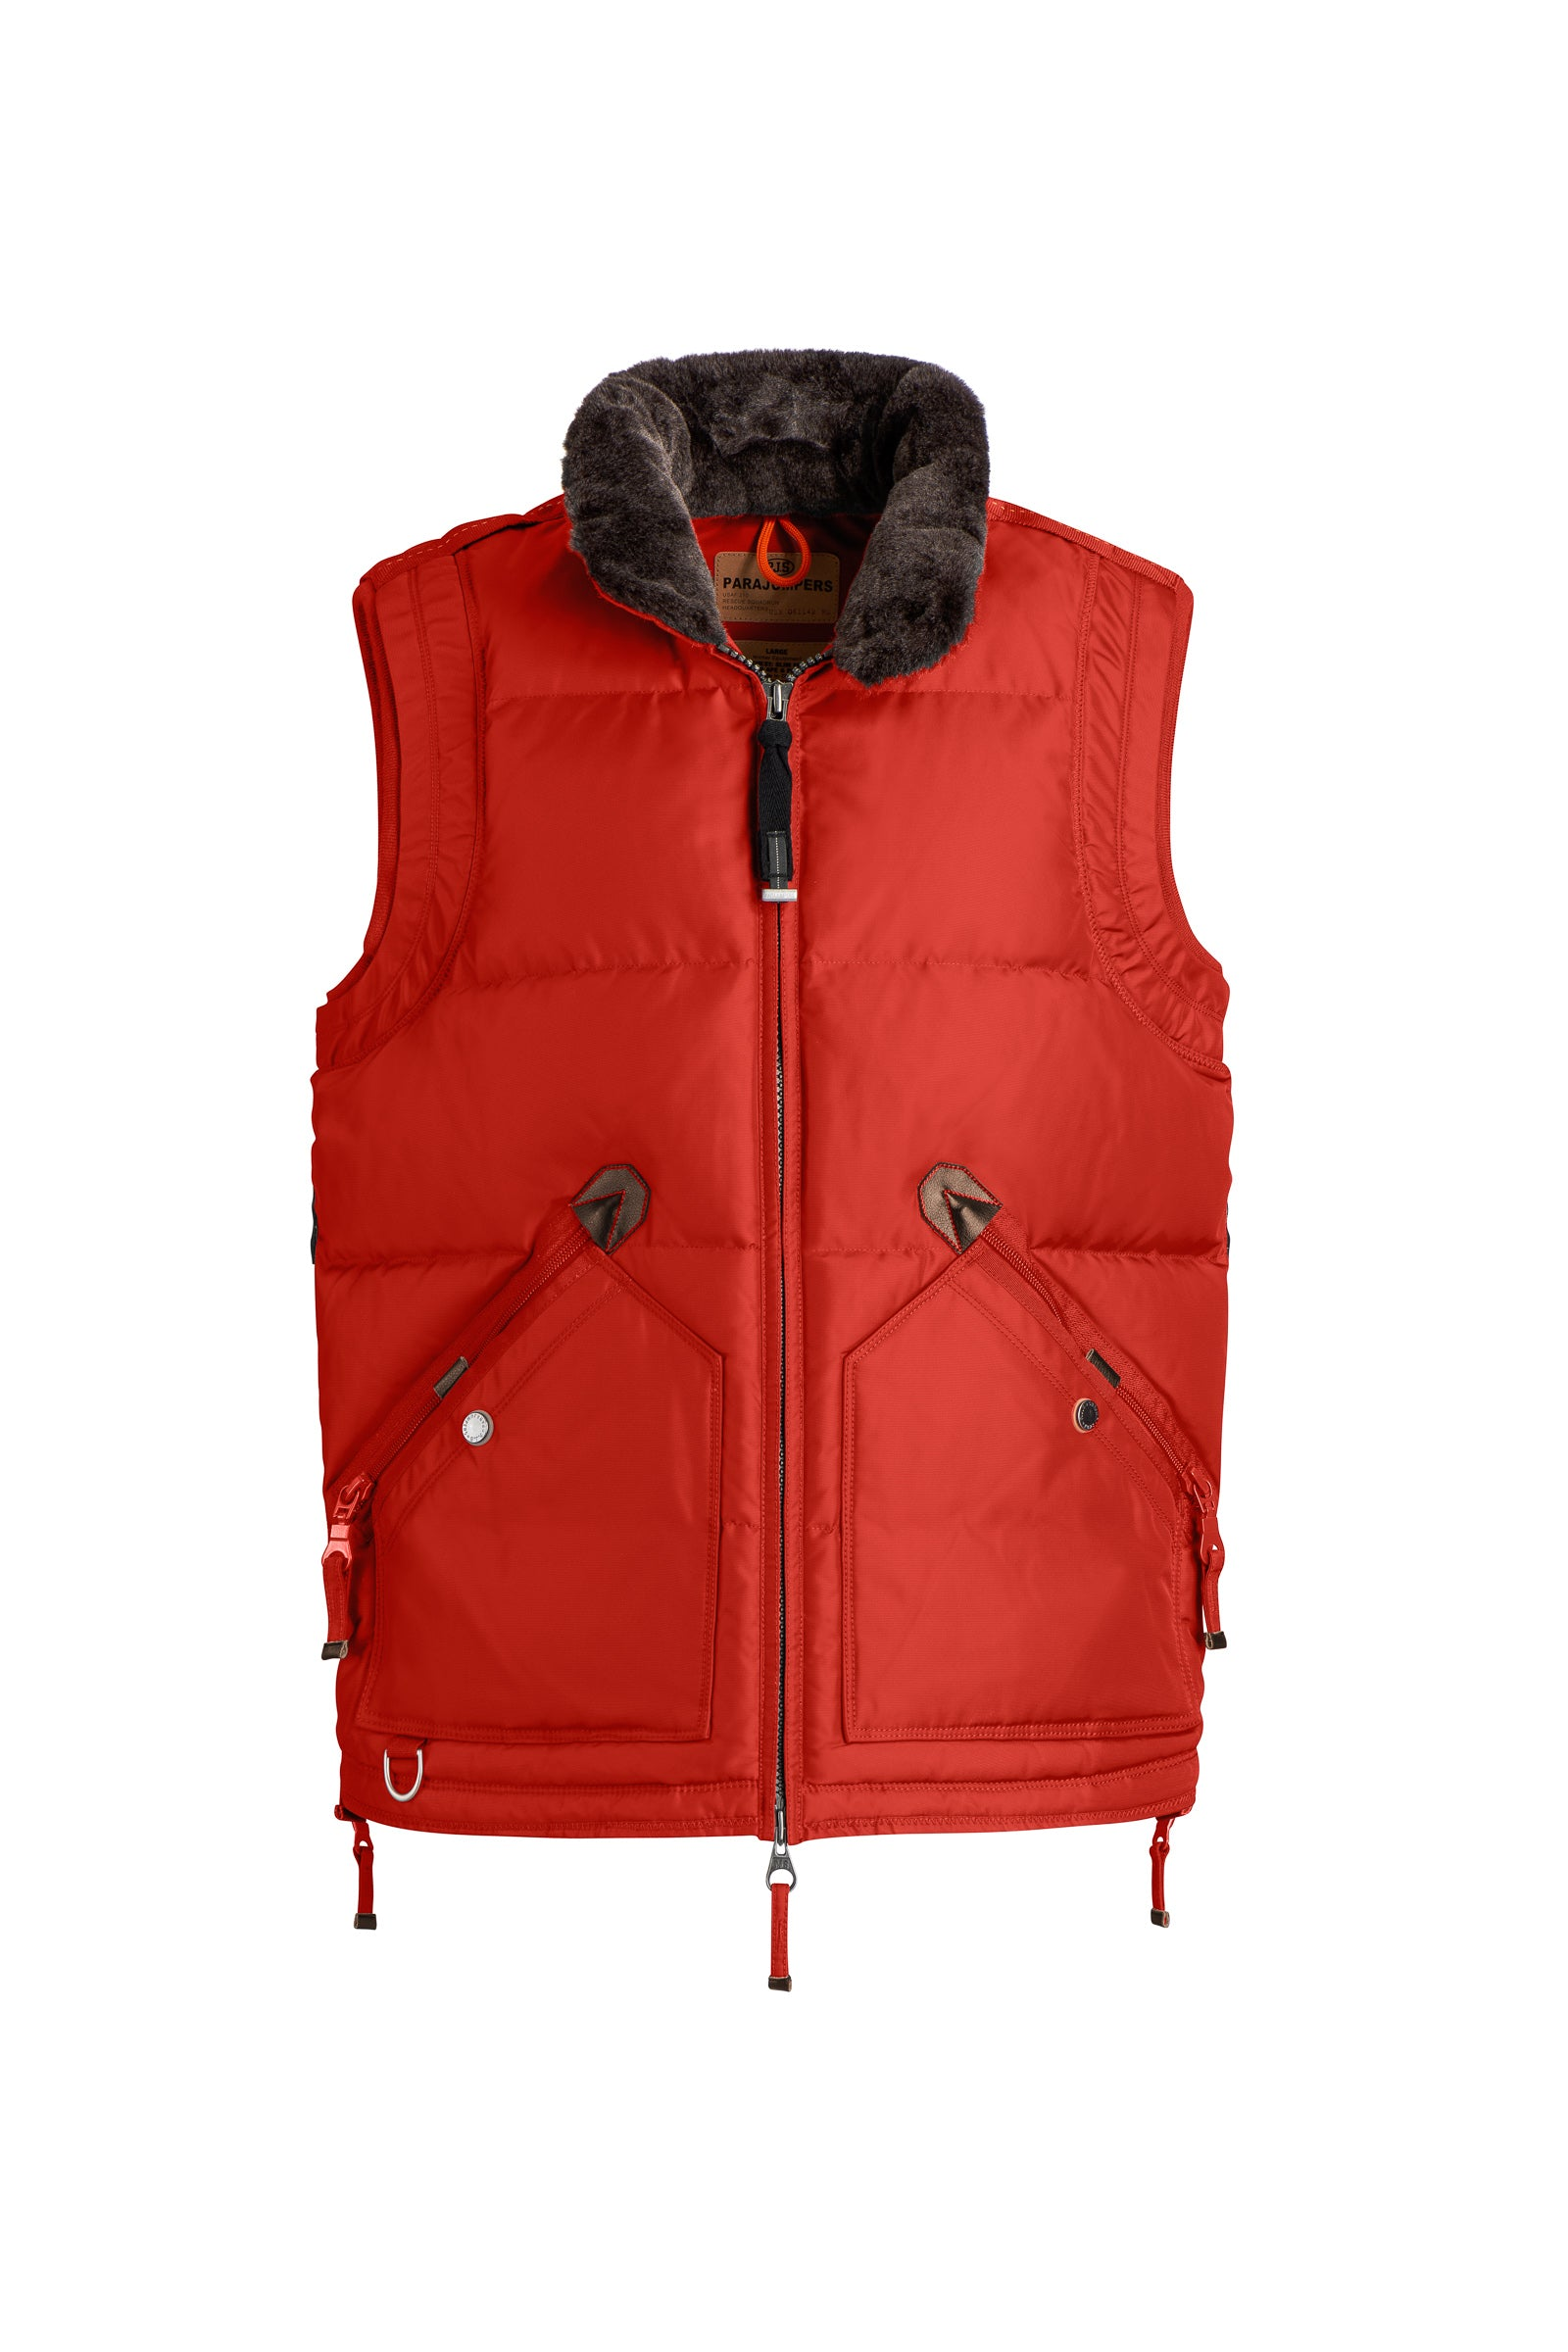 Parajumpers Kobuk Vest in Chili